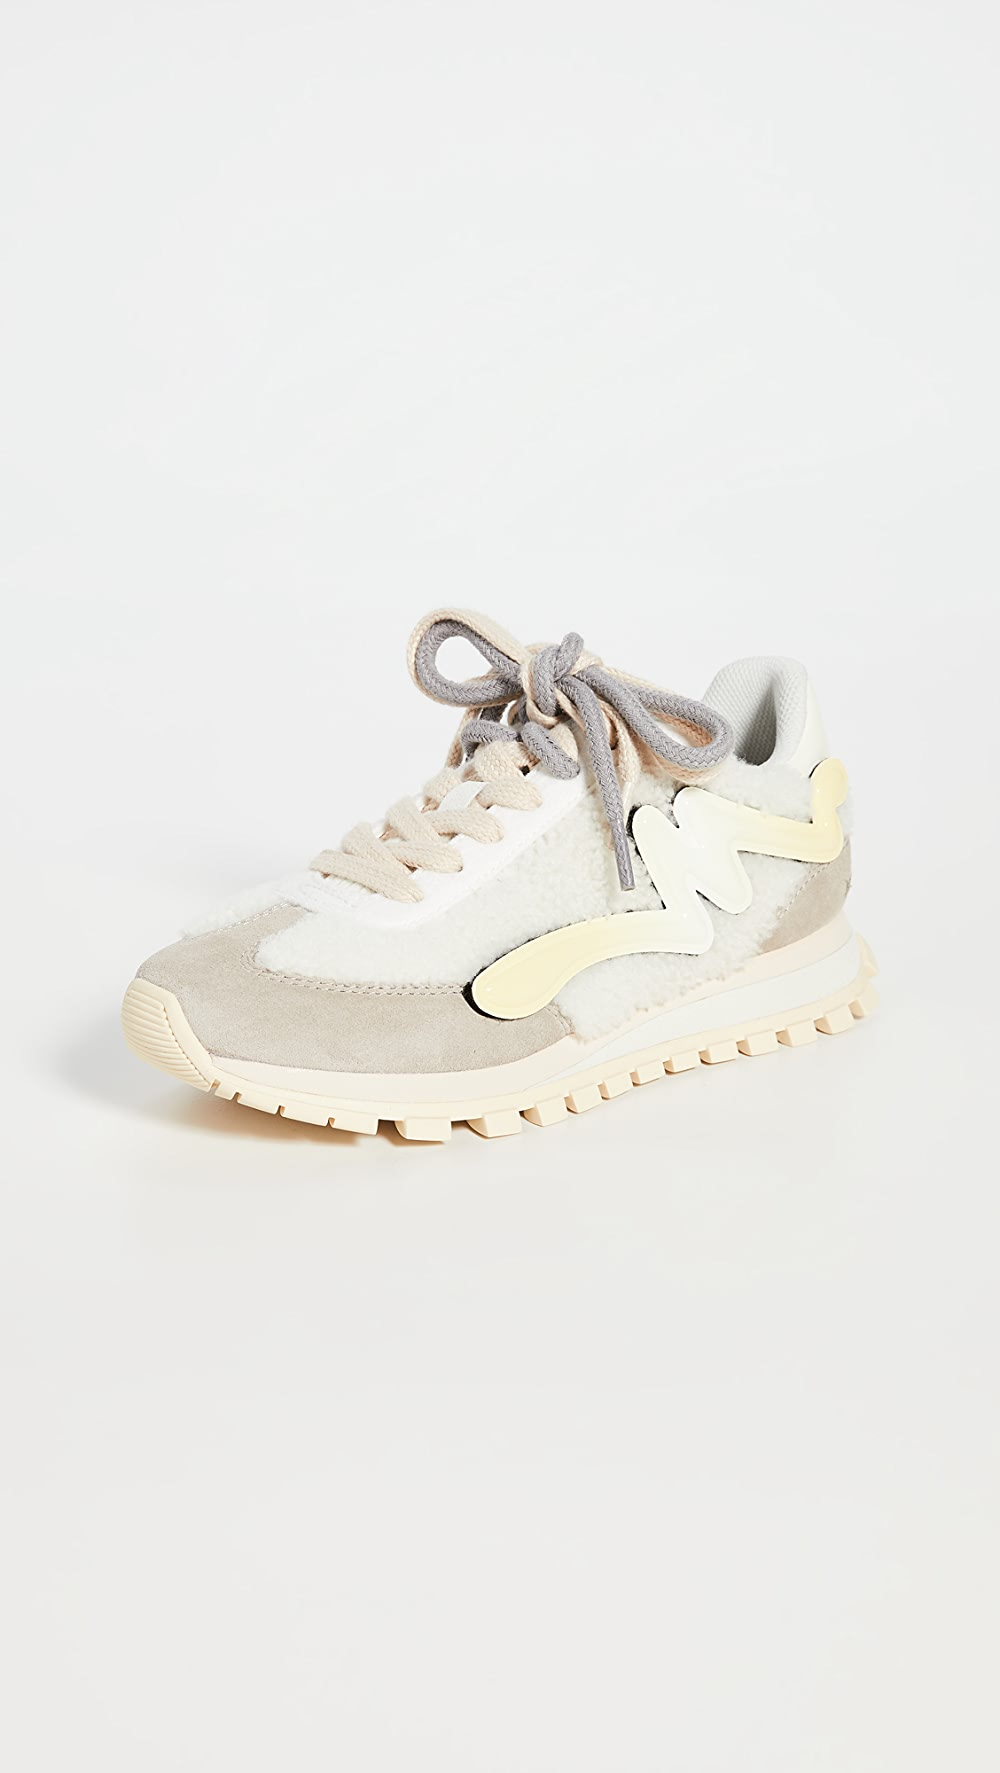 2019 Latest Design Runway Marc Jacobs - The Jogger X Runway Edition Sneakers Good Taste